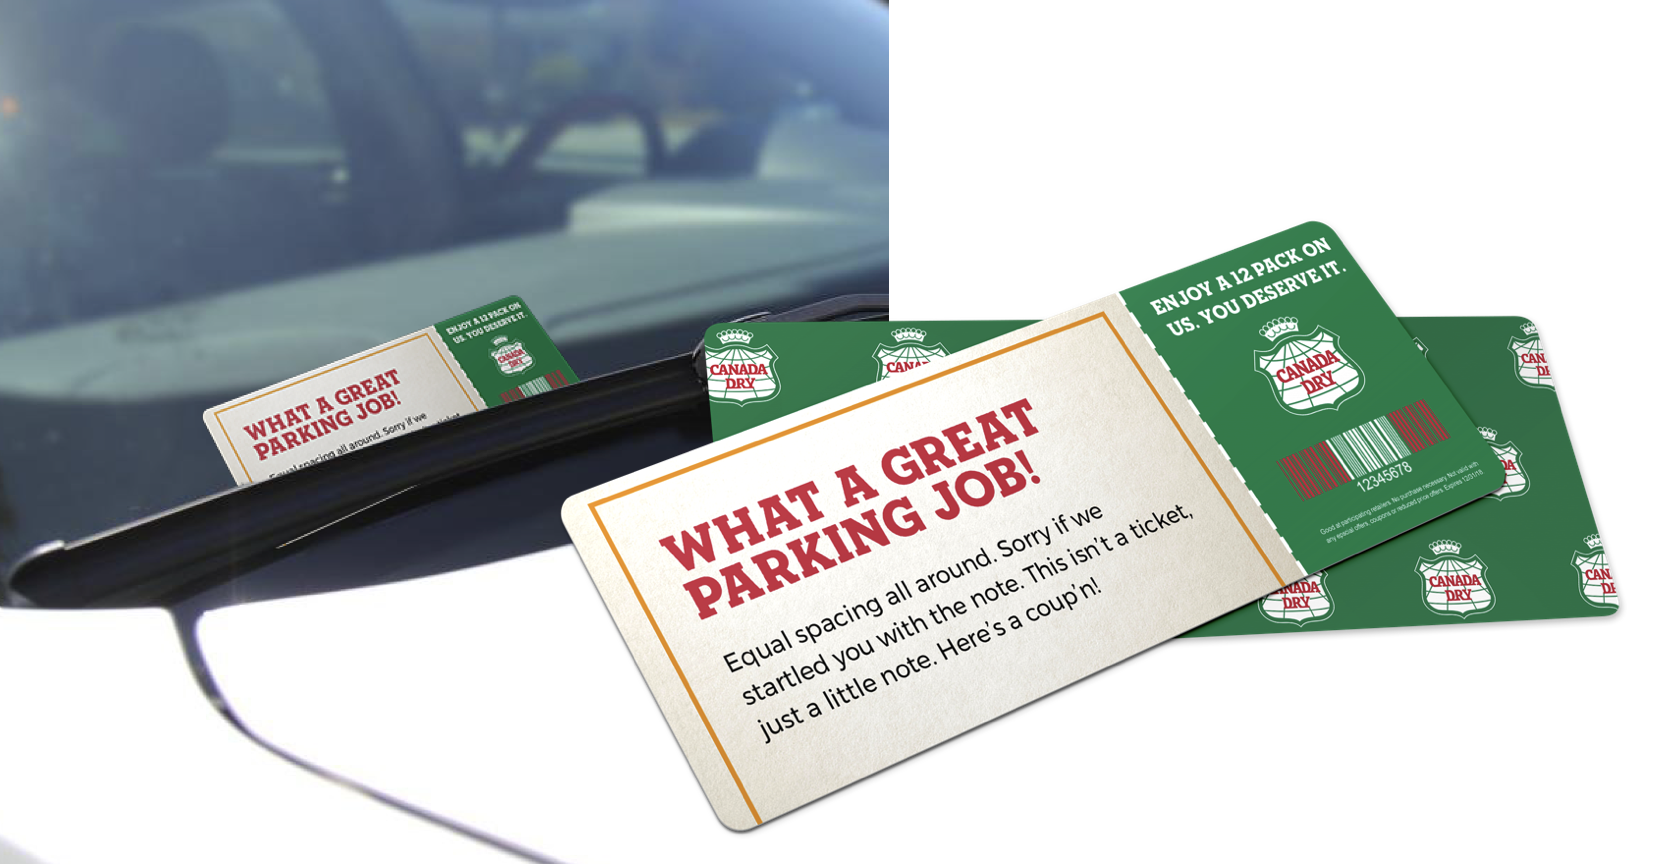 Canada Dry Parking Note (both).png